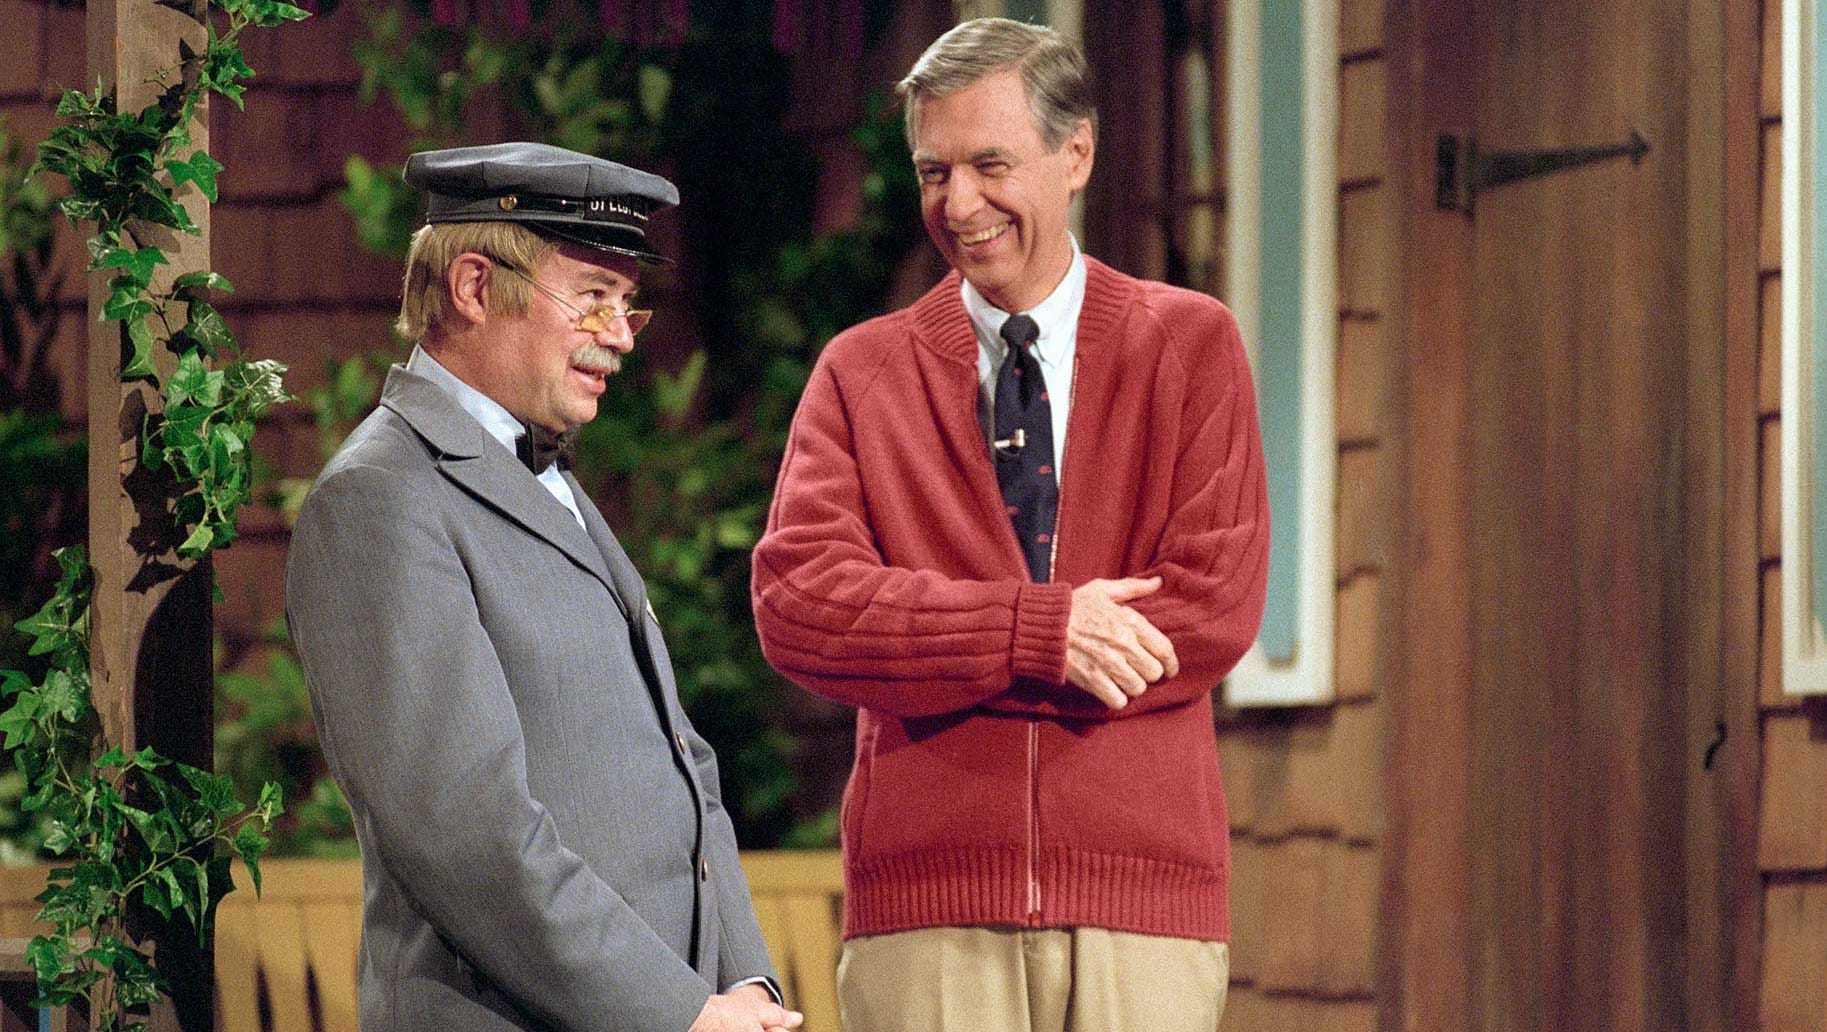 Lessons From Mister Rogers On Being A Good Neighbor